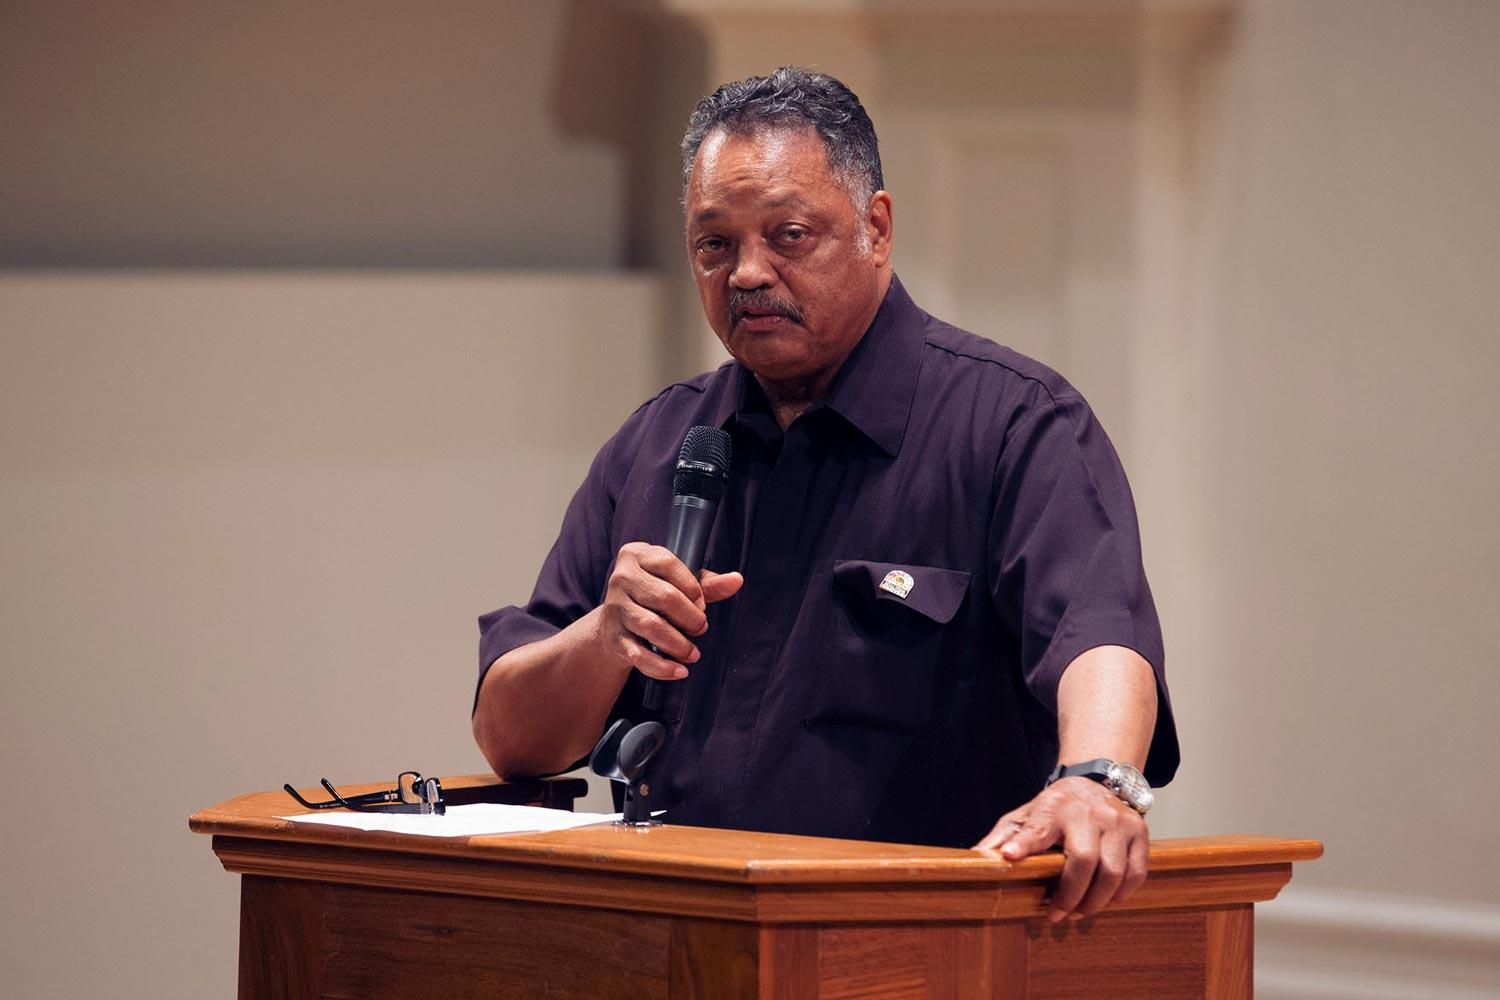 Rev. Jesse Jackson is one of America's foremost leaders in civil rights, religion and politics. He was a candidate for the Democratic nomination for president in the 1984 and 1988 elections.